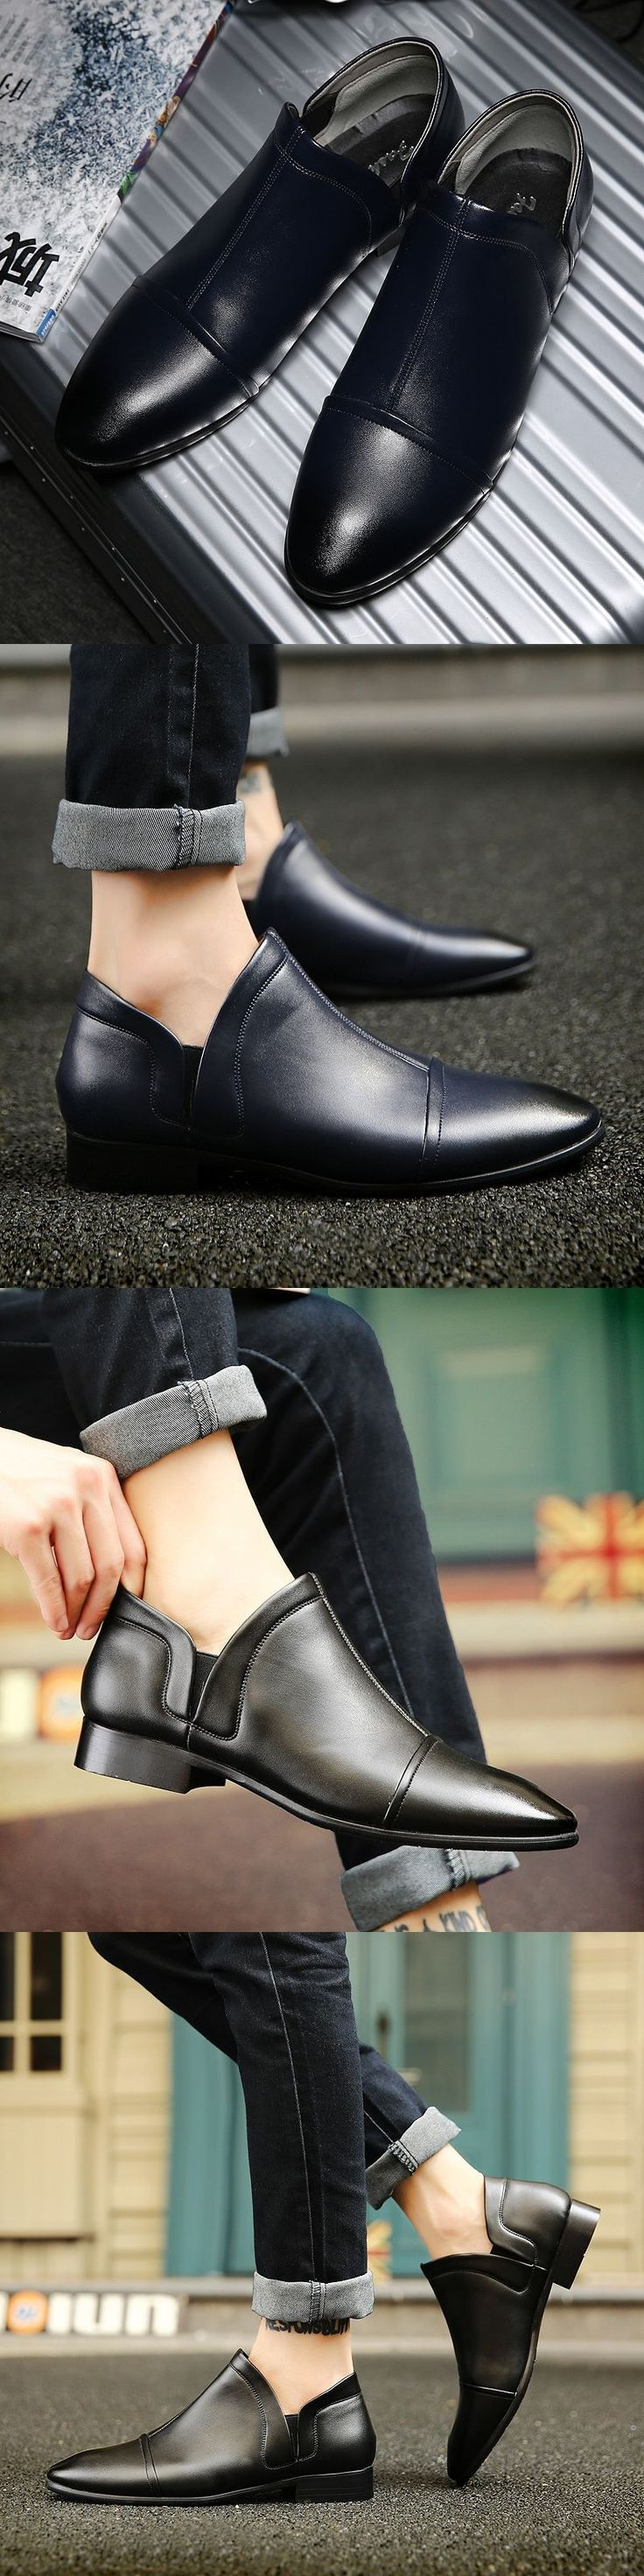 Urban Brand Elegant Male Classic Shoes Slip On Party Dress Shoes Leather Vintage Business Shoes Formal Pointed Shining Toe Flats #luxuryvintage